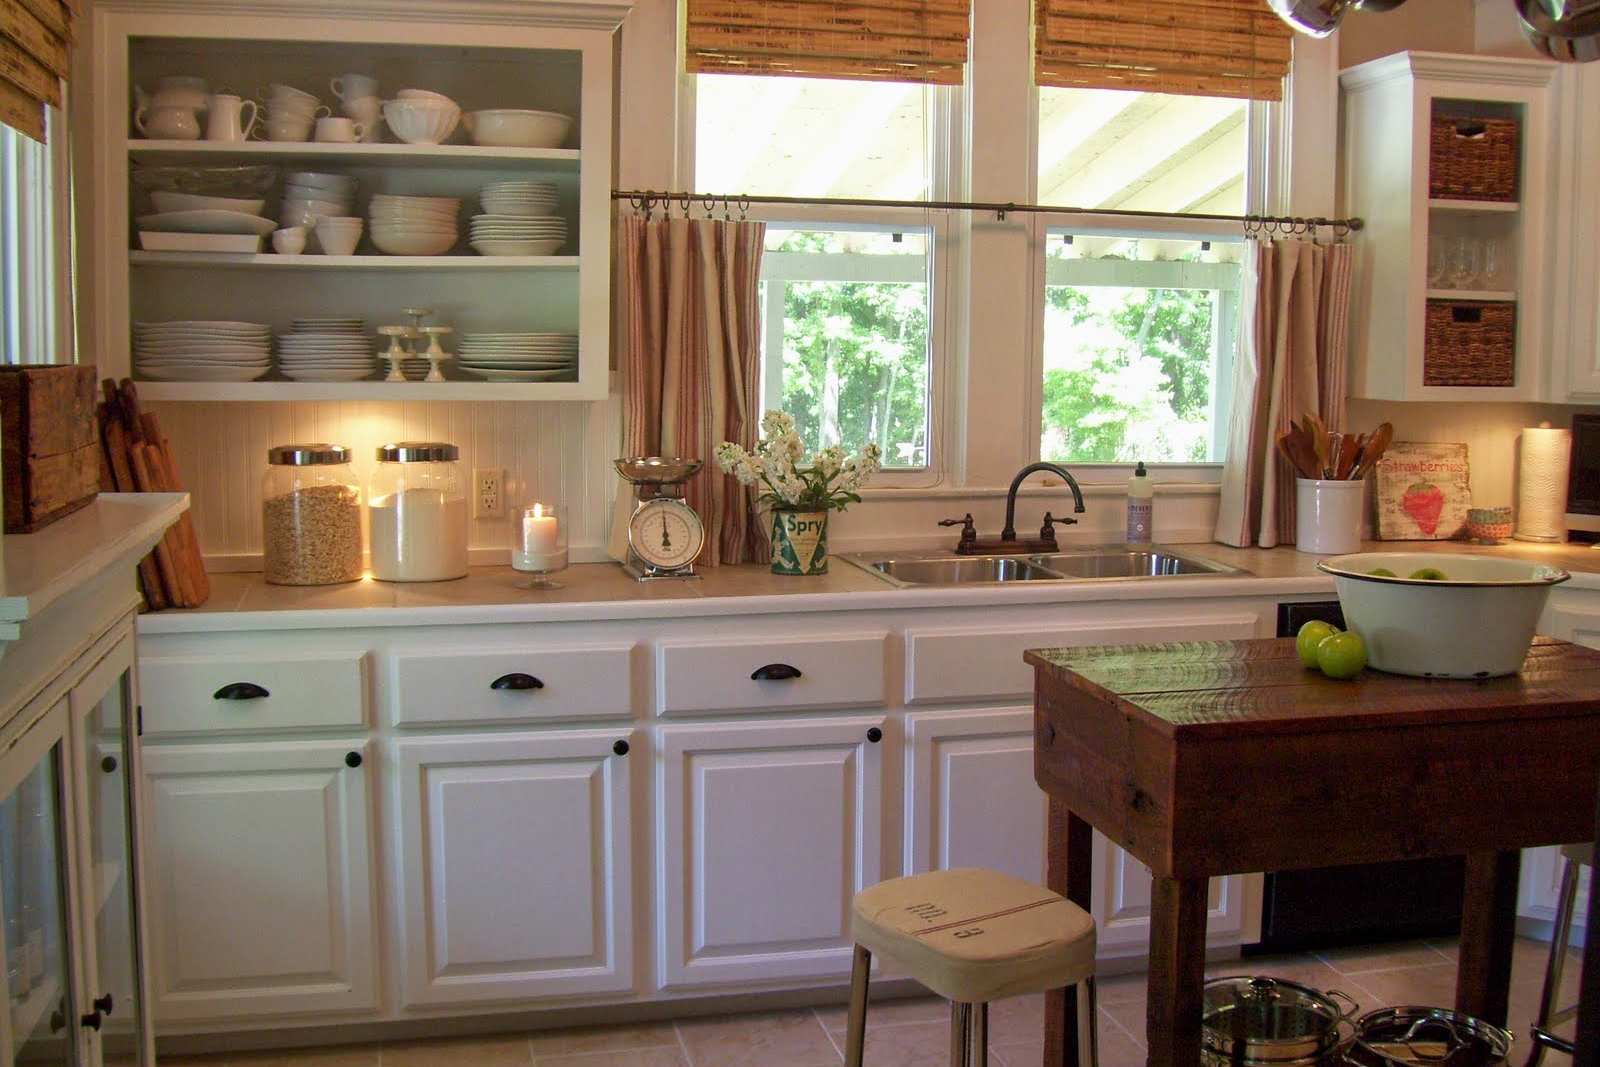 Kitchen Remodel On A Budget remodeling a kitchen | do it yourself kitchen remodel